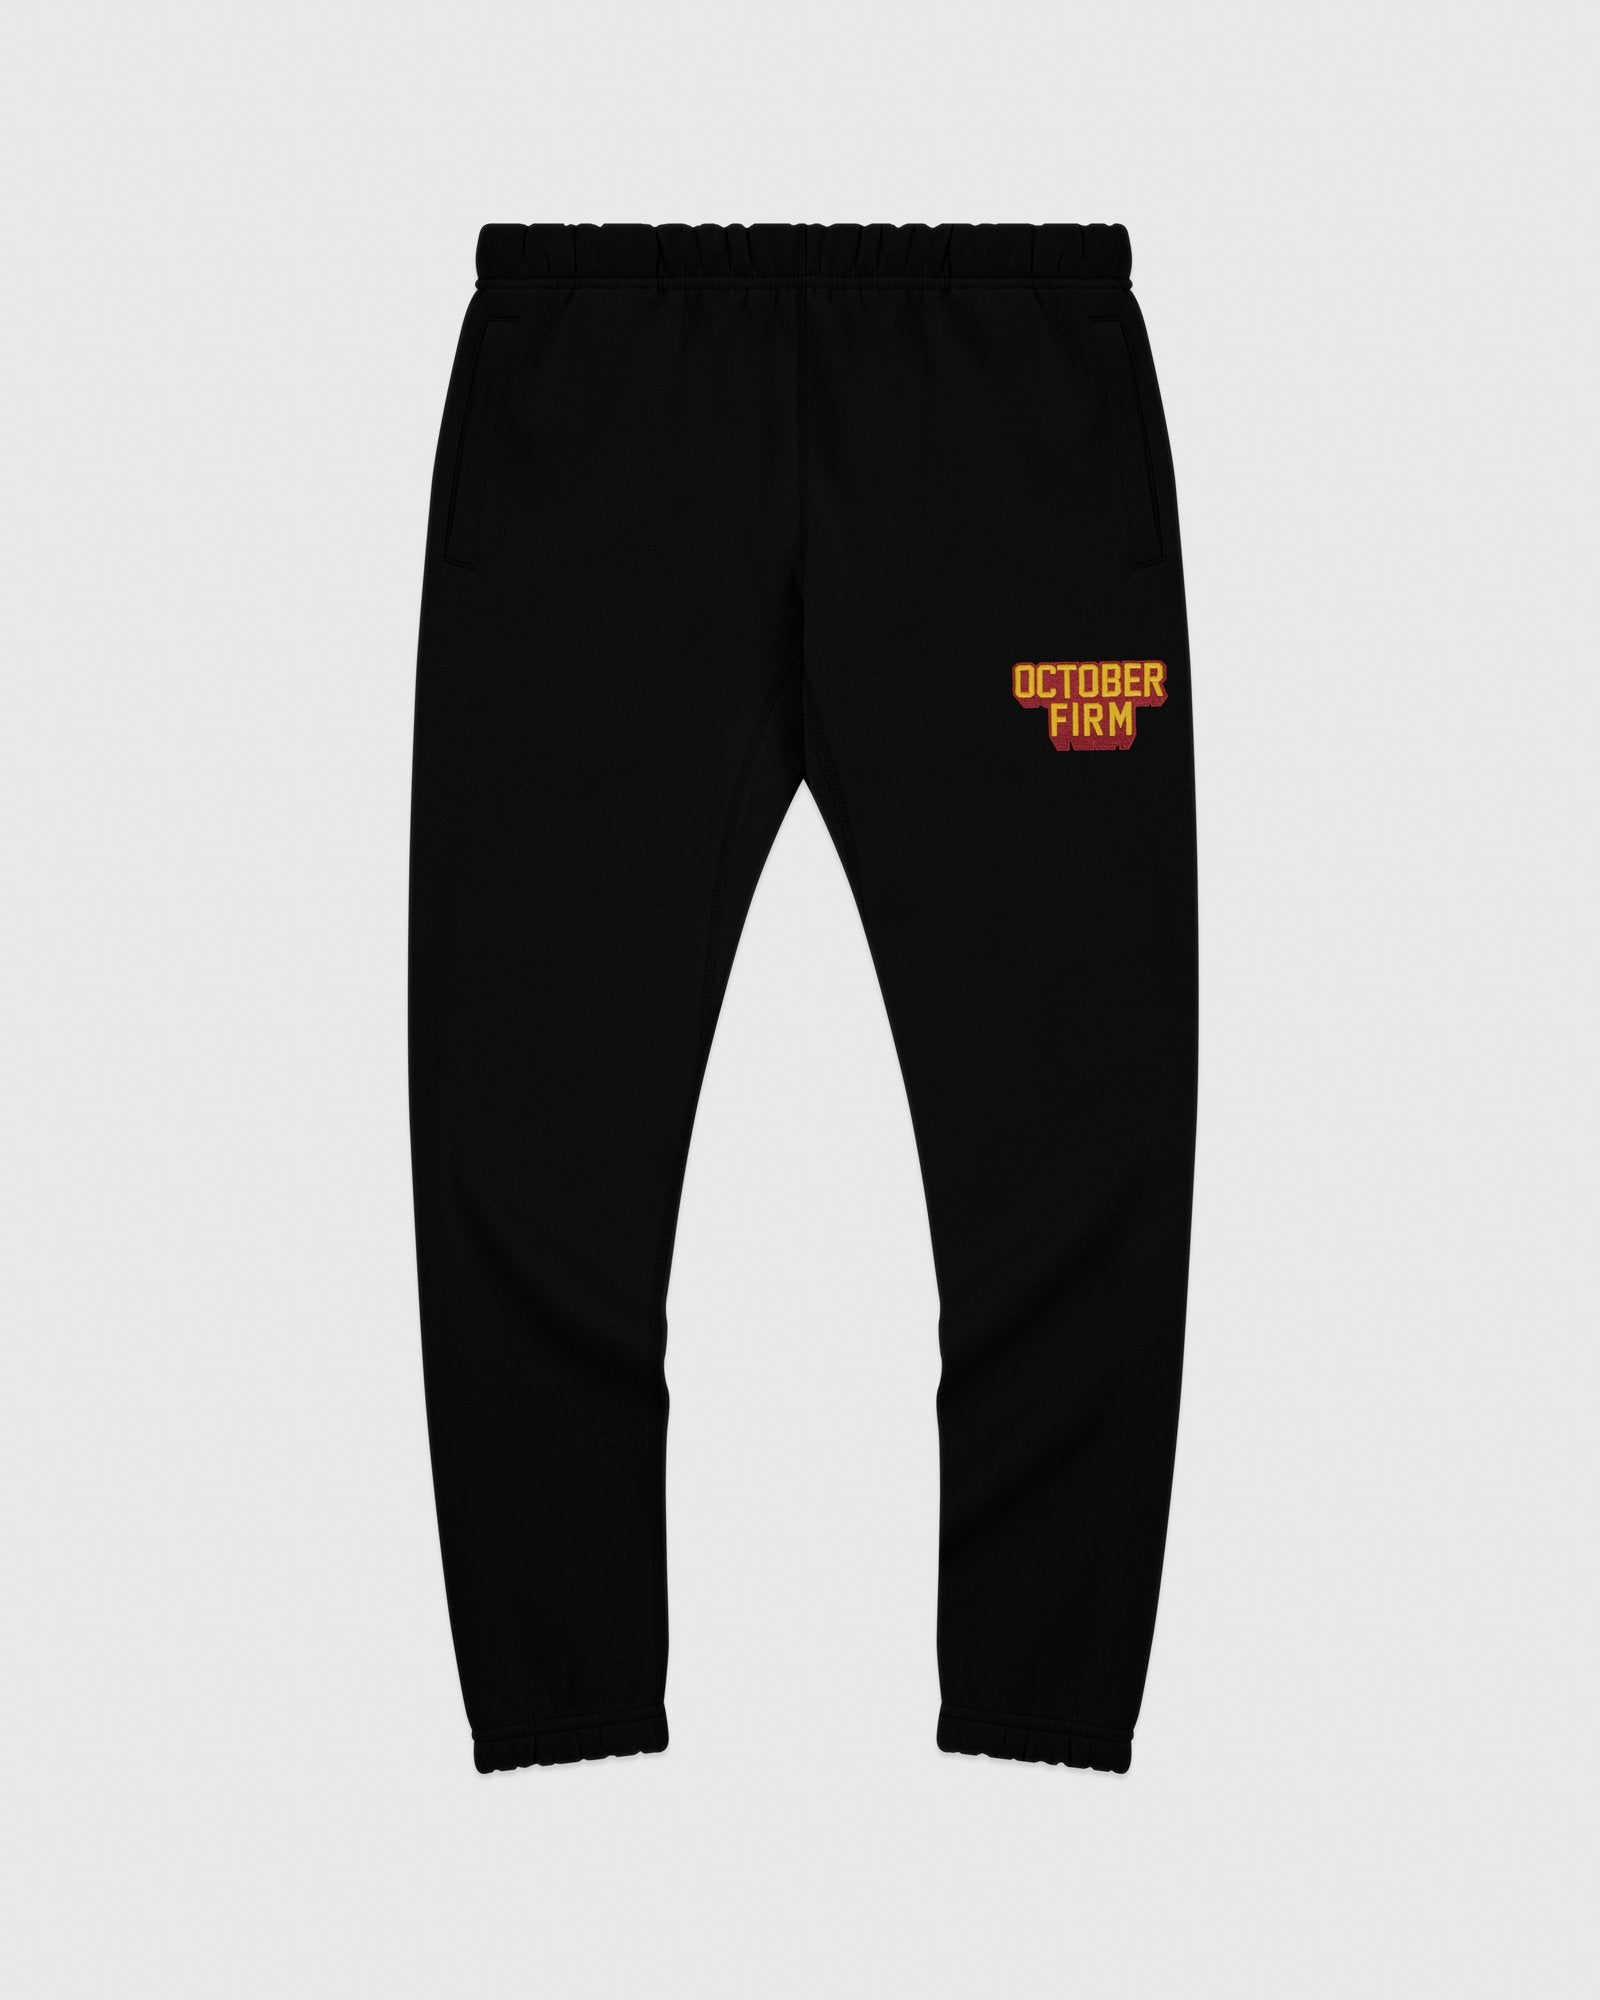 OCTOBER FIRM SHADOW SWEATPANT - BLACK IMAGE #1